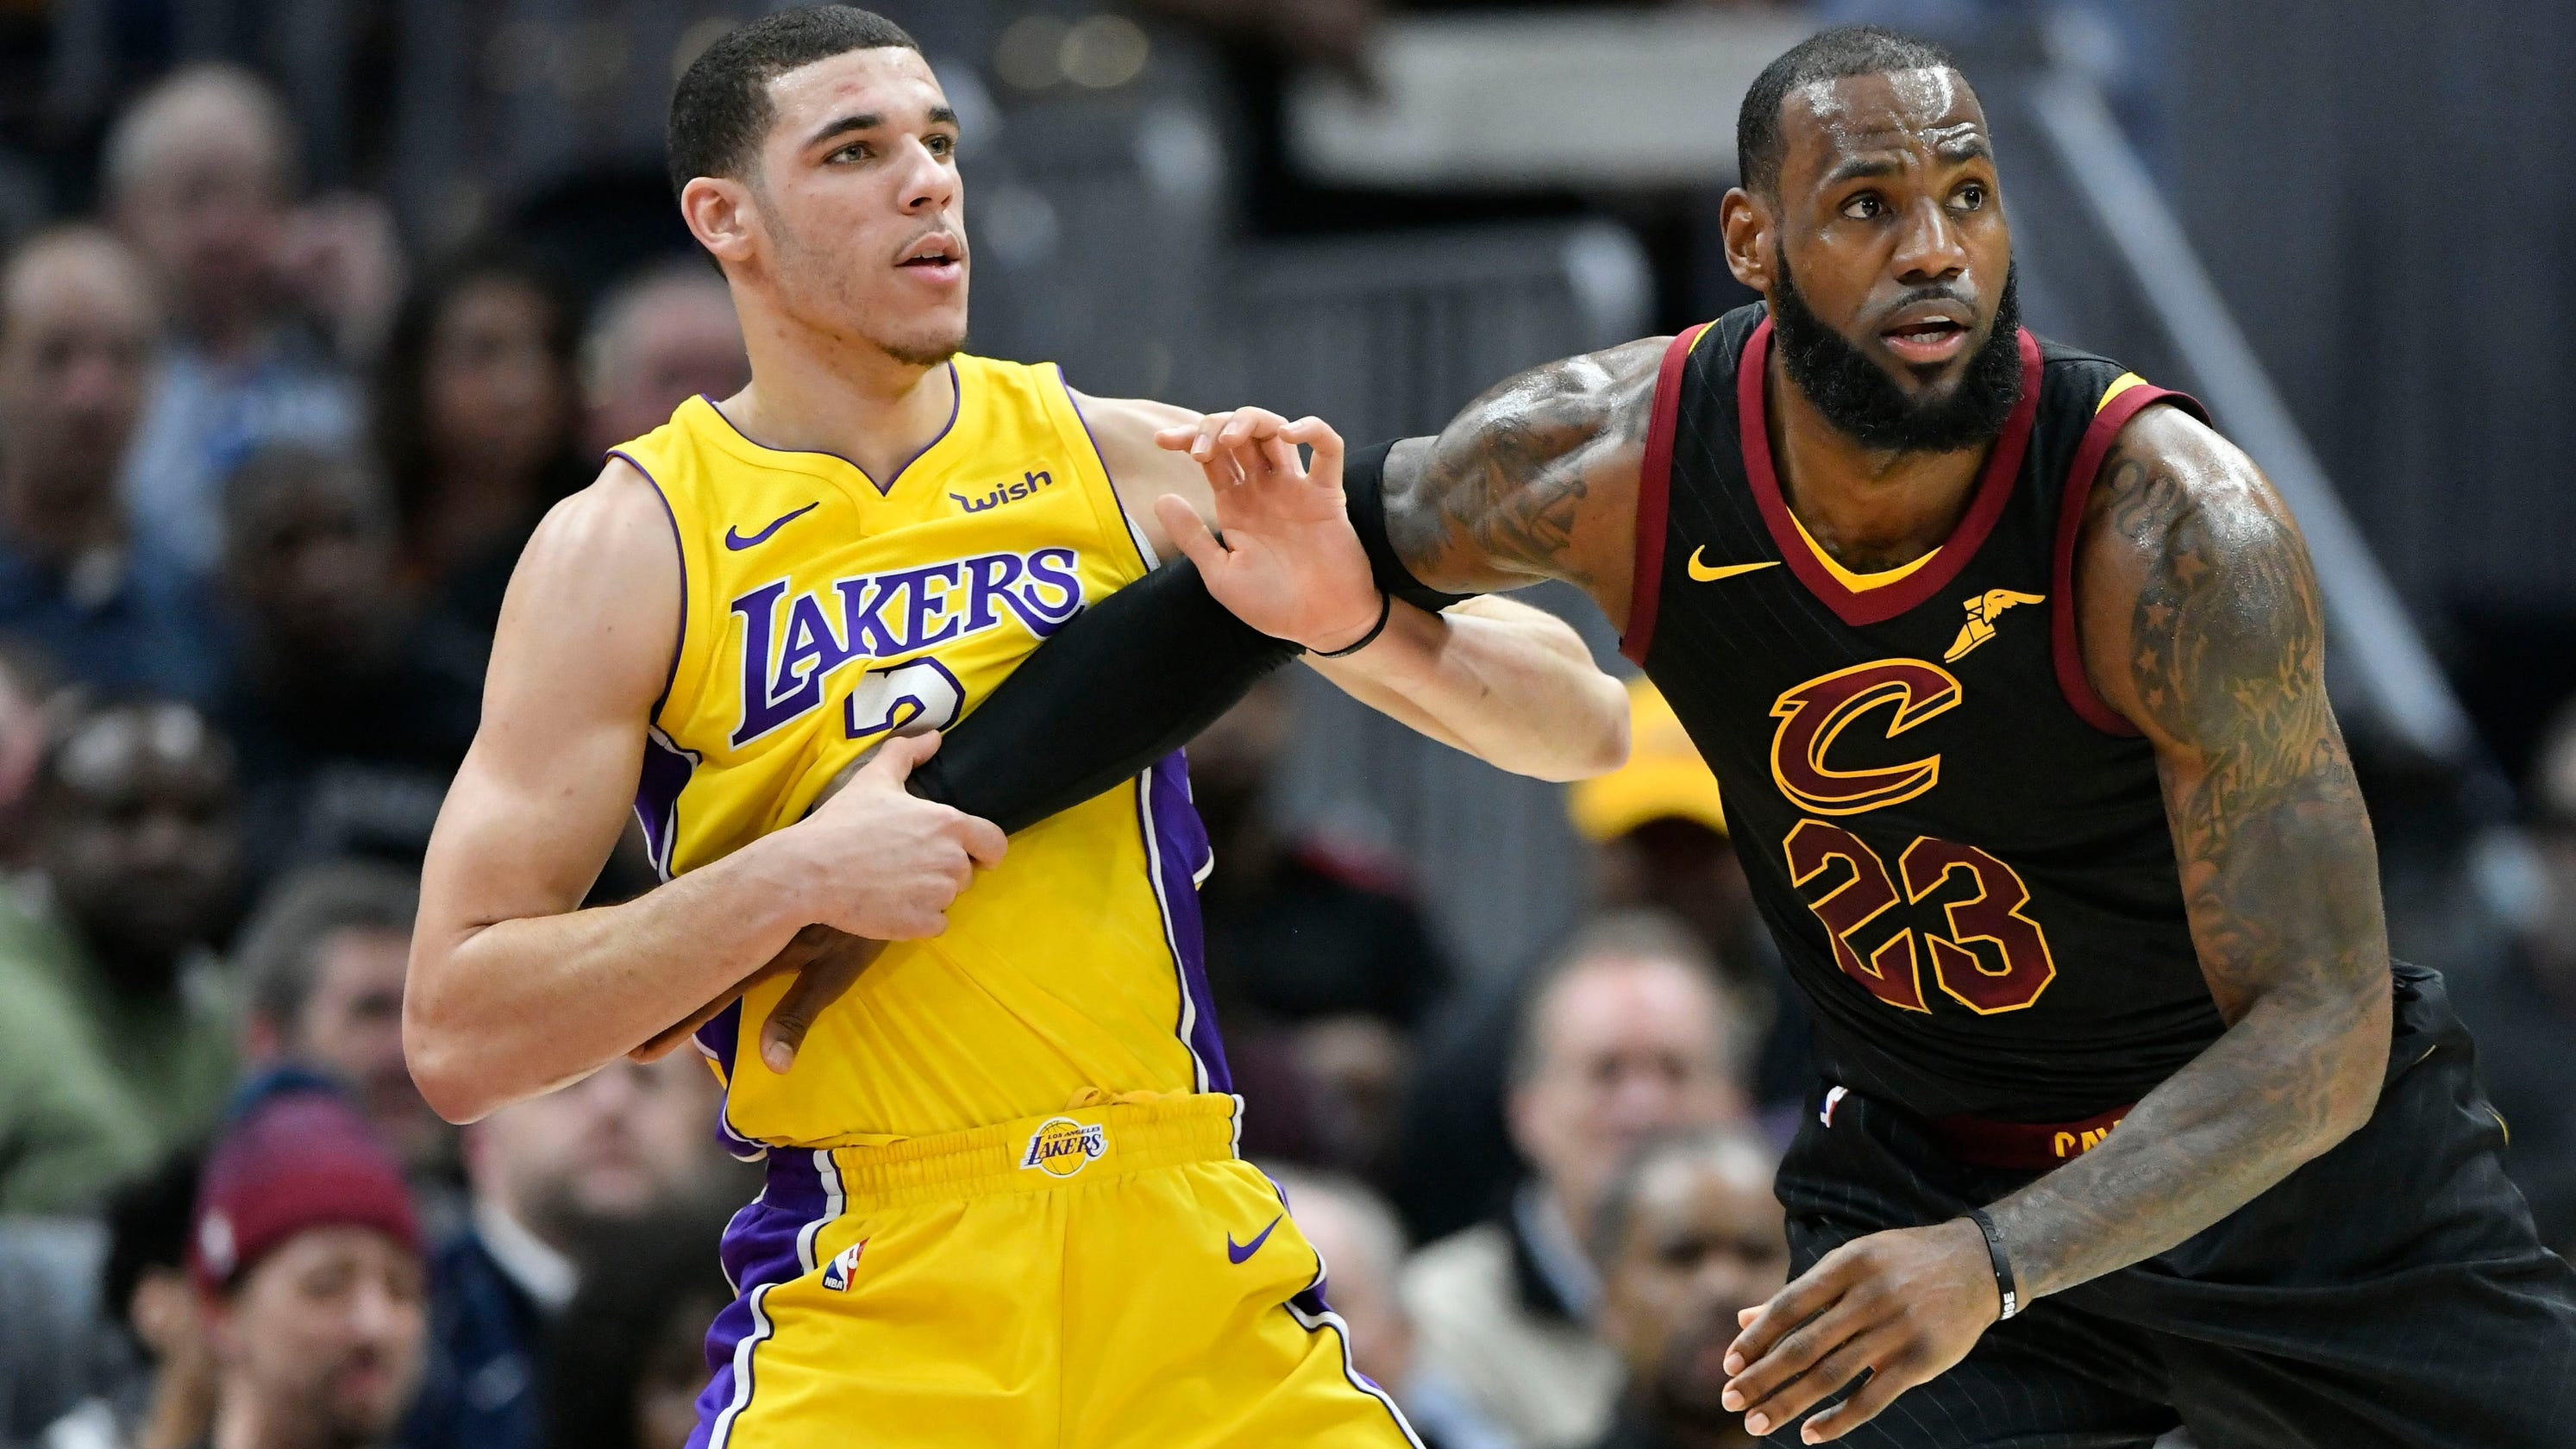 c4a6f2854 Lonzo Ball on LeBron   He not God  Lakers guard says of man he admires